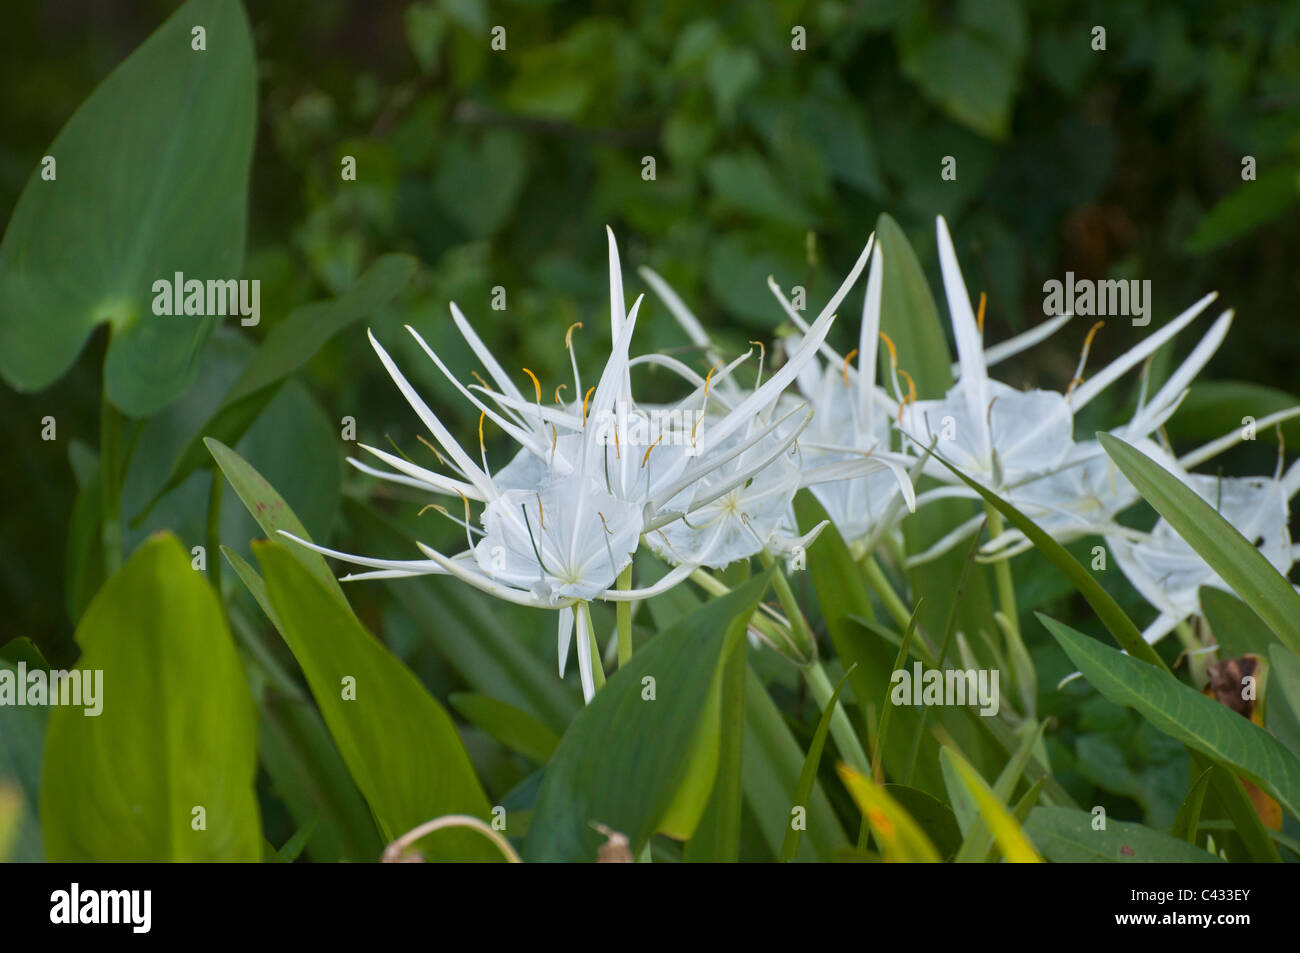 Spider lily flowering plants at wakulla springs state park near spider lily flowering plants at wakulla springs state park near tallahassee florida izmirmasajfo Image collections